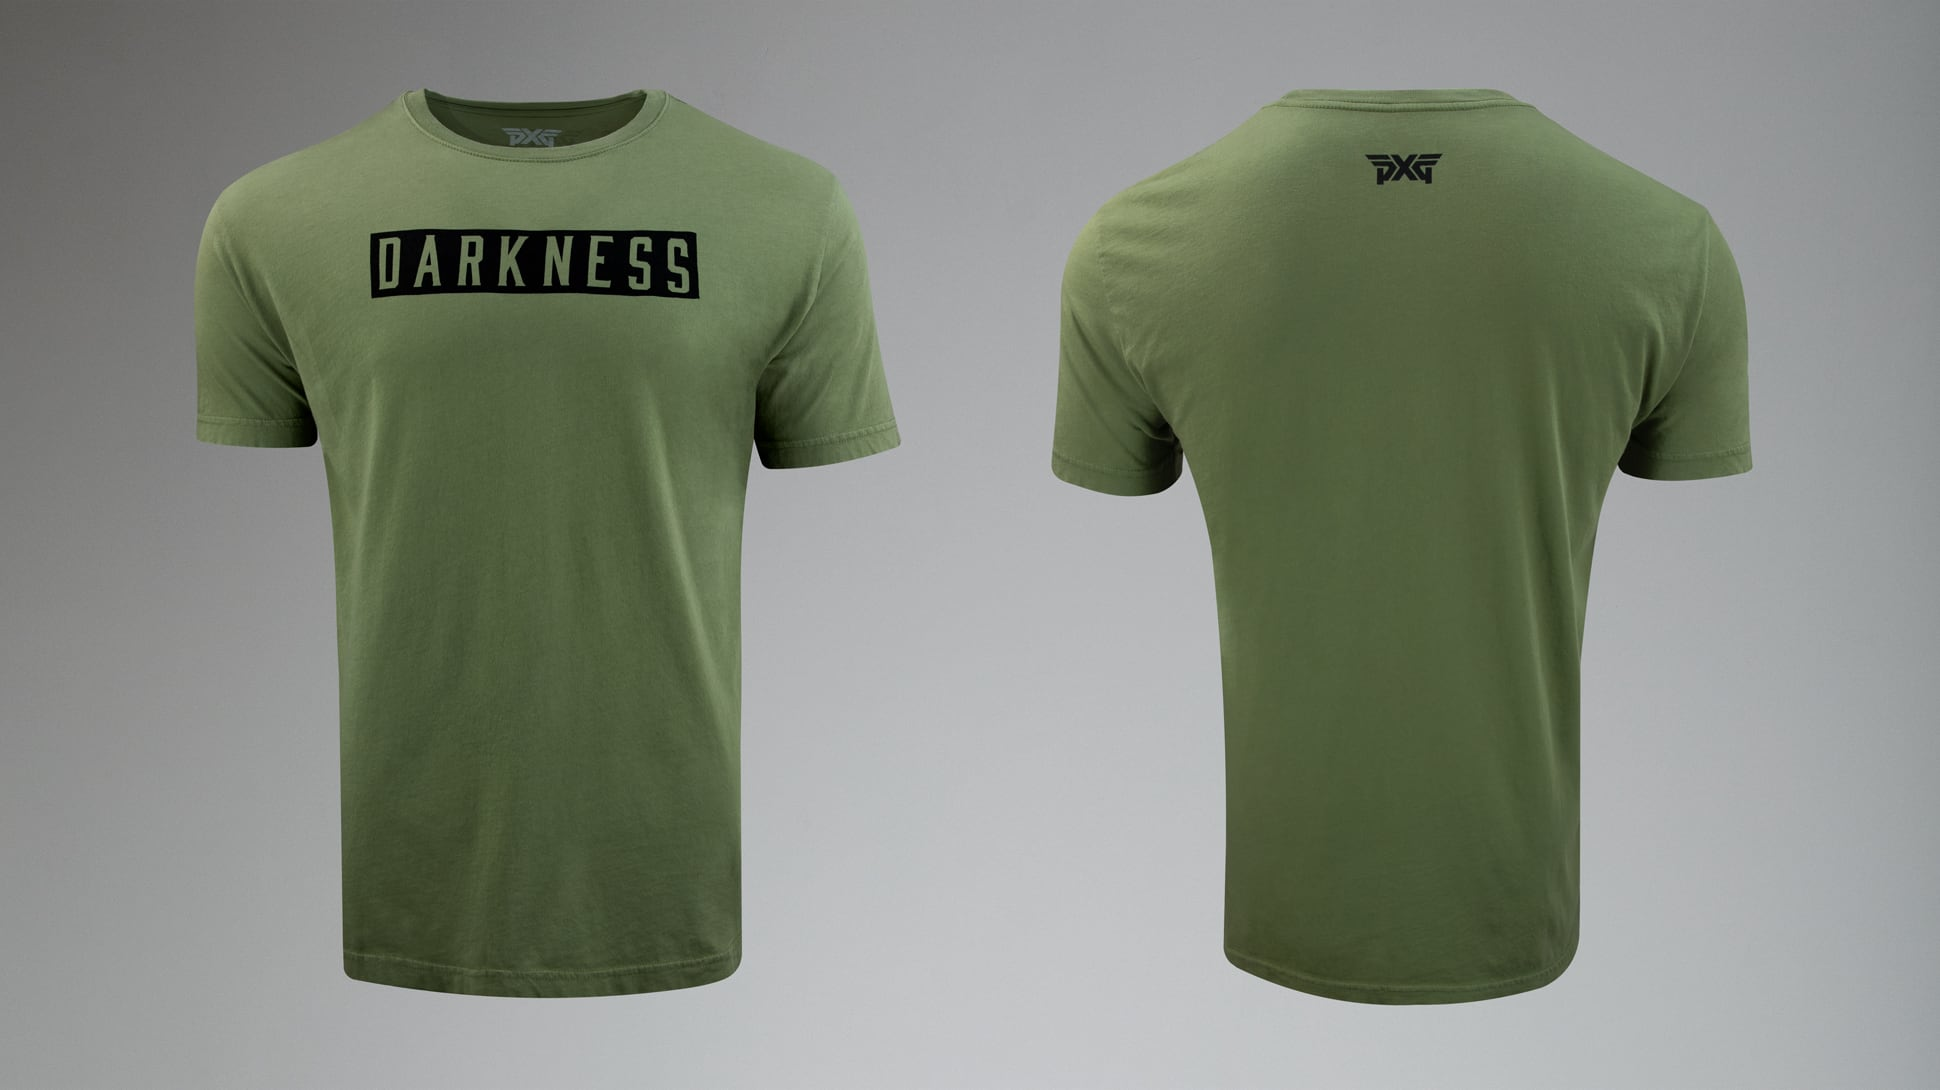 Darkness Bar Tee Image 1